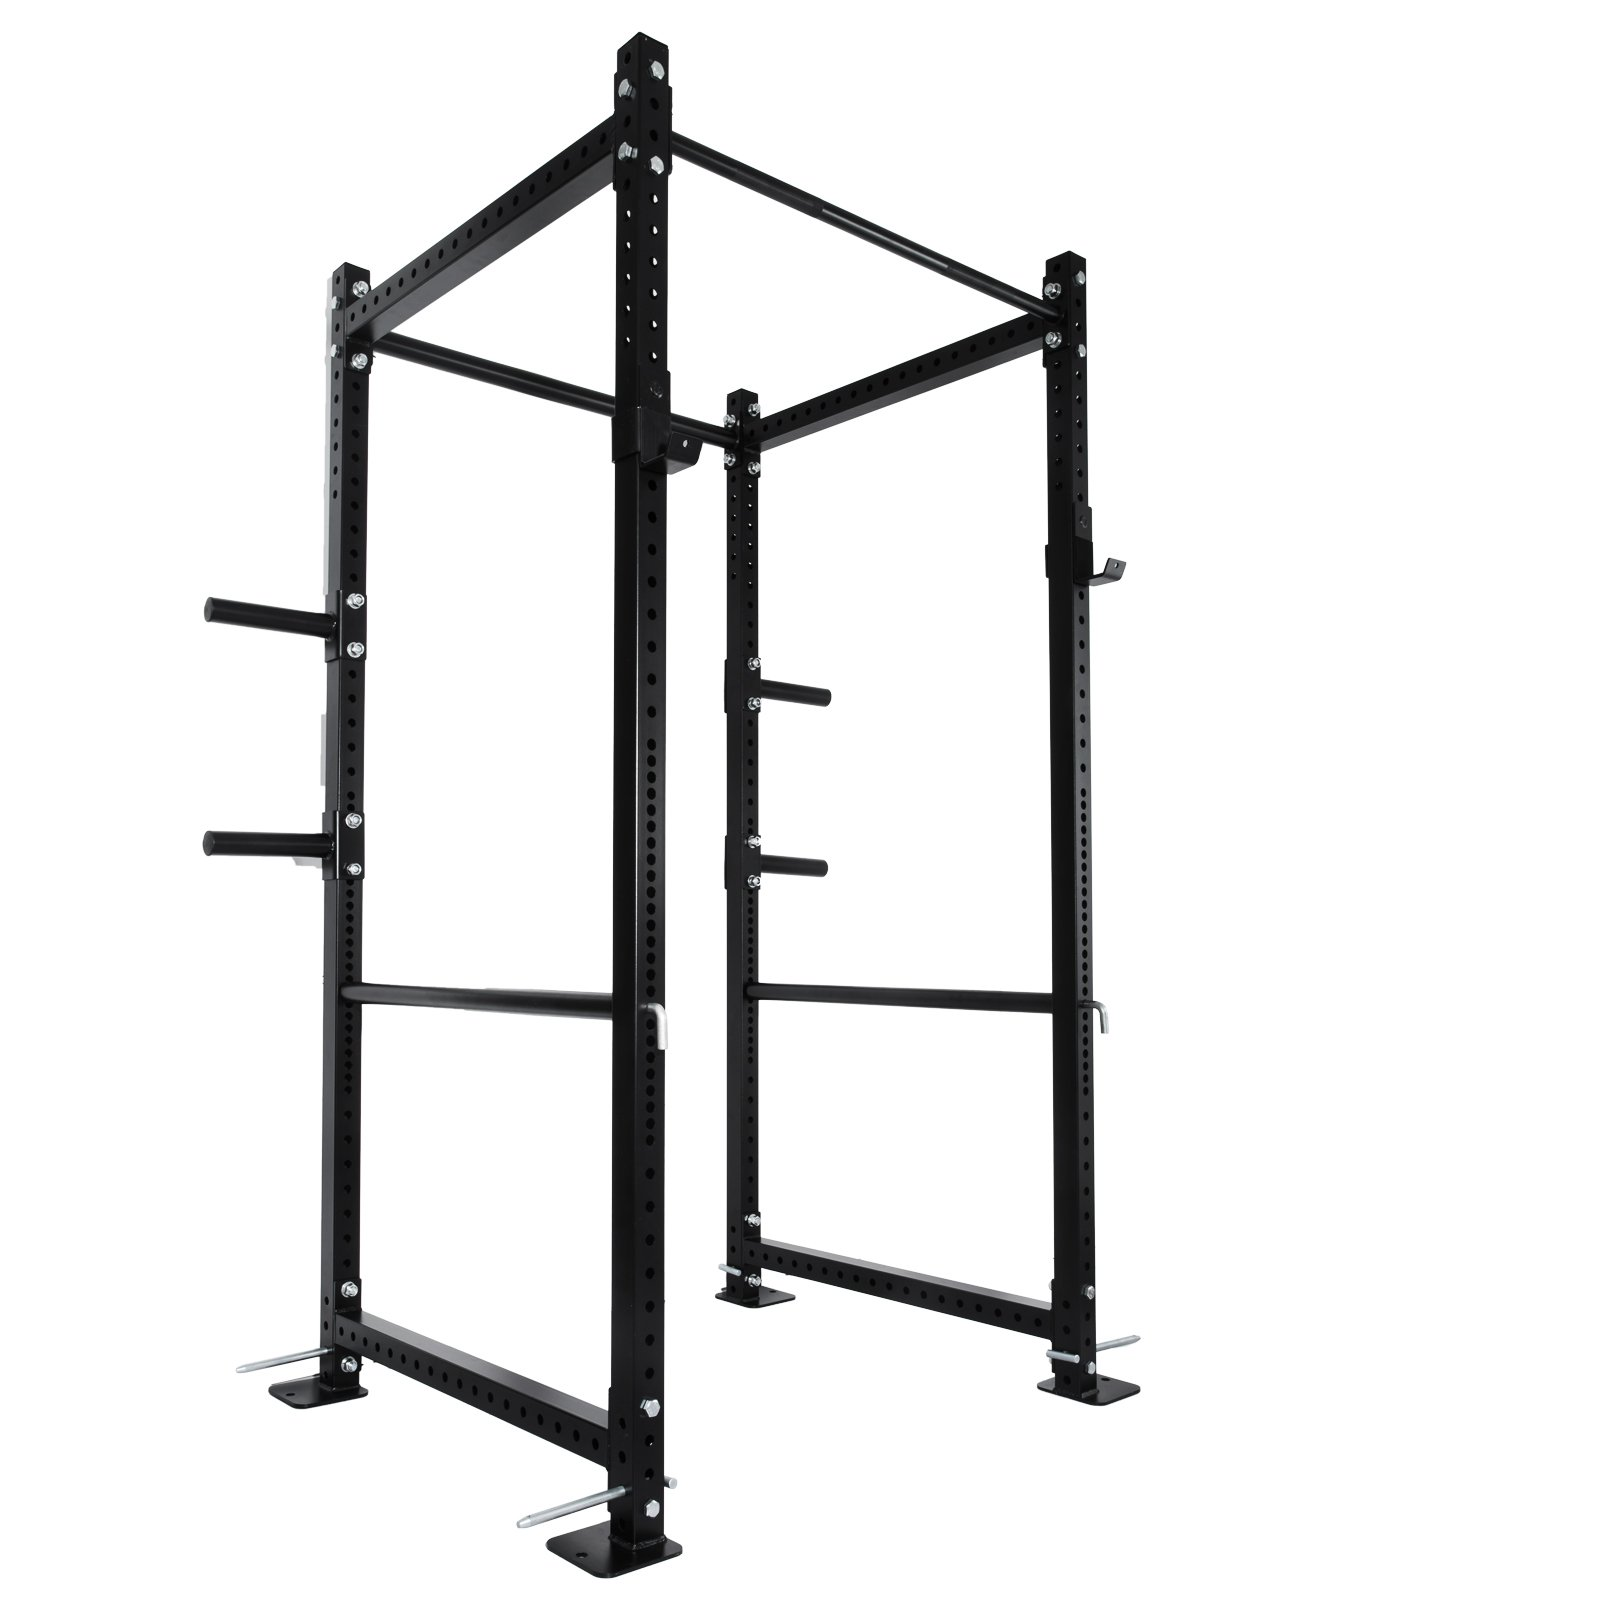 Popsport Deep Squat Rack Series Power Rack Squat Barbell Cage Bench Stand Heavy Duty Multi-Grip Chin-Up Fitness Power Rock for Home Gym (T-3 Series 82'')